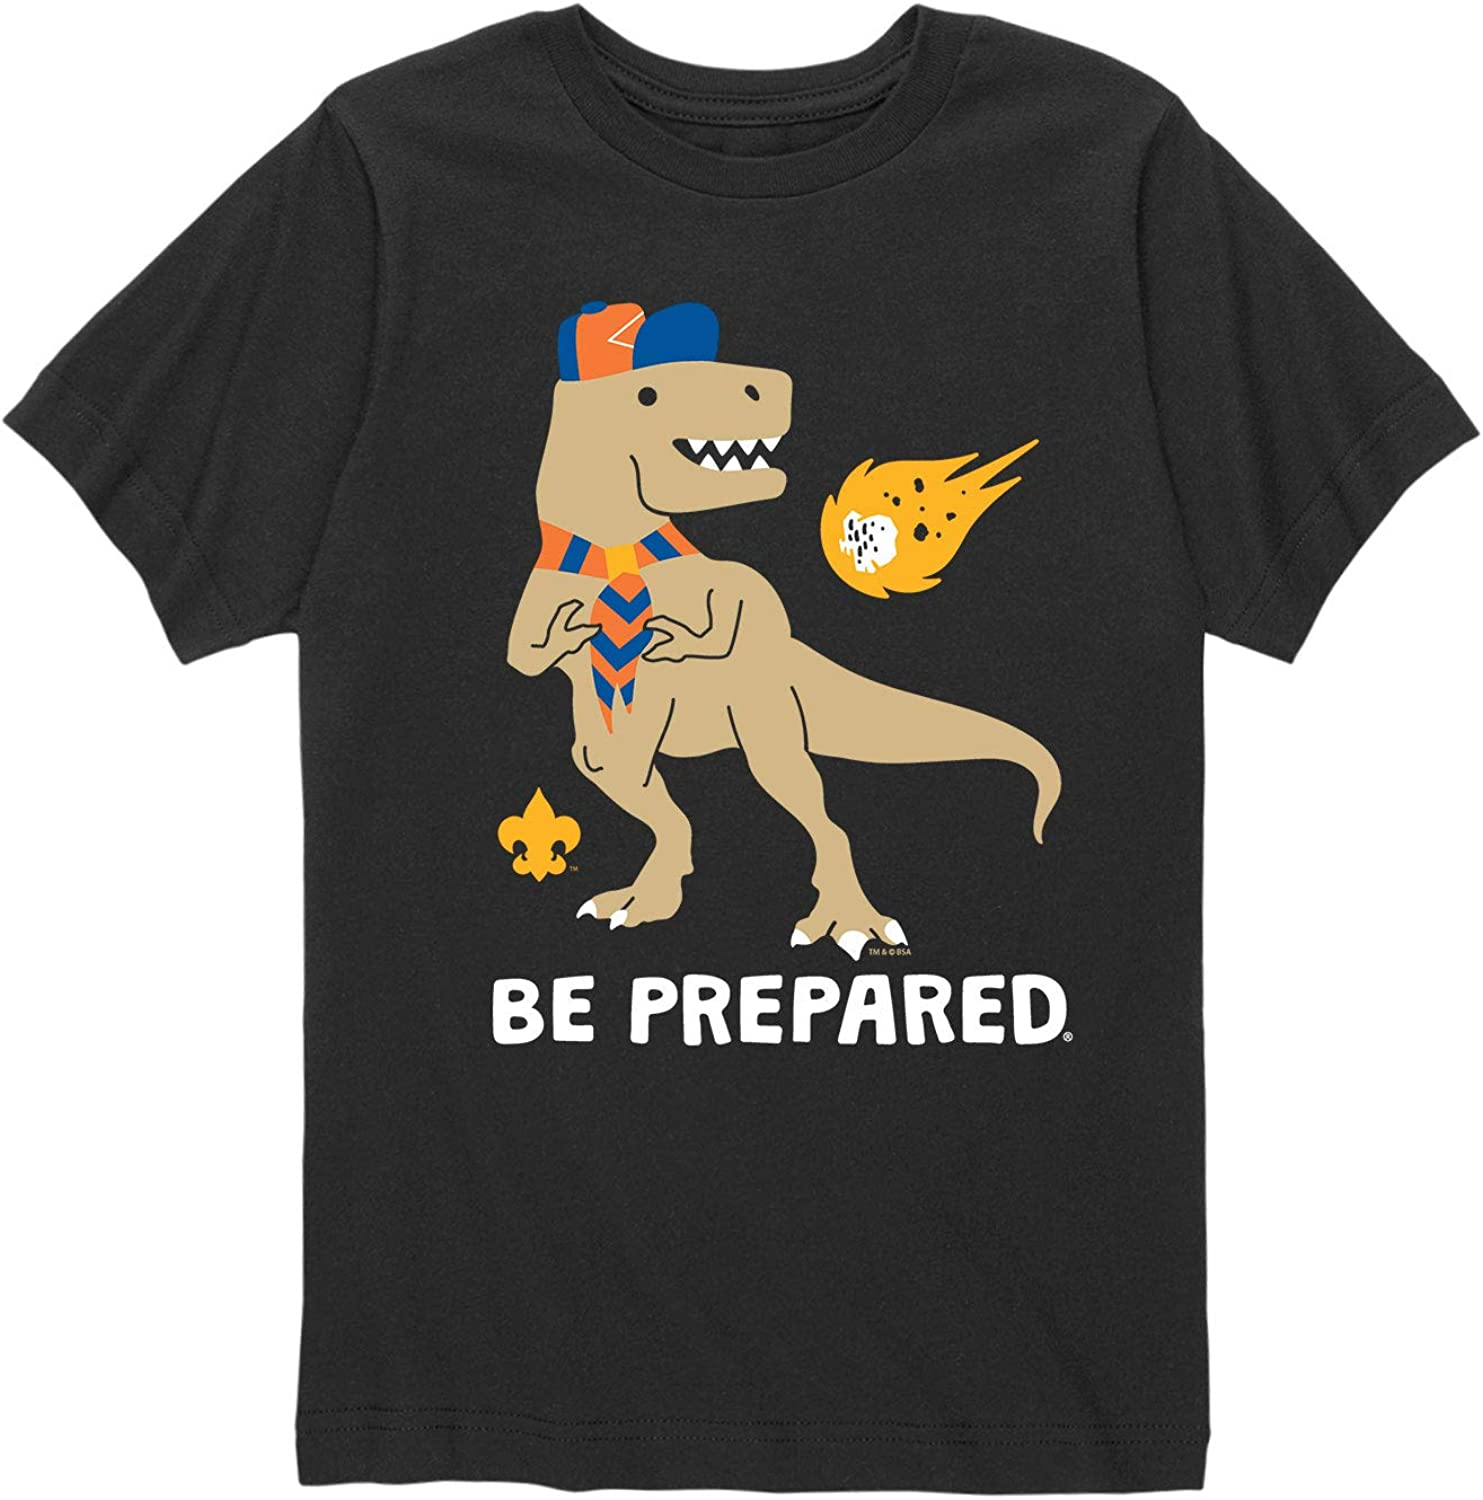 Boy Scouts of America Scout Dino - Youth Short Sleeve Graphic T-Shirt